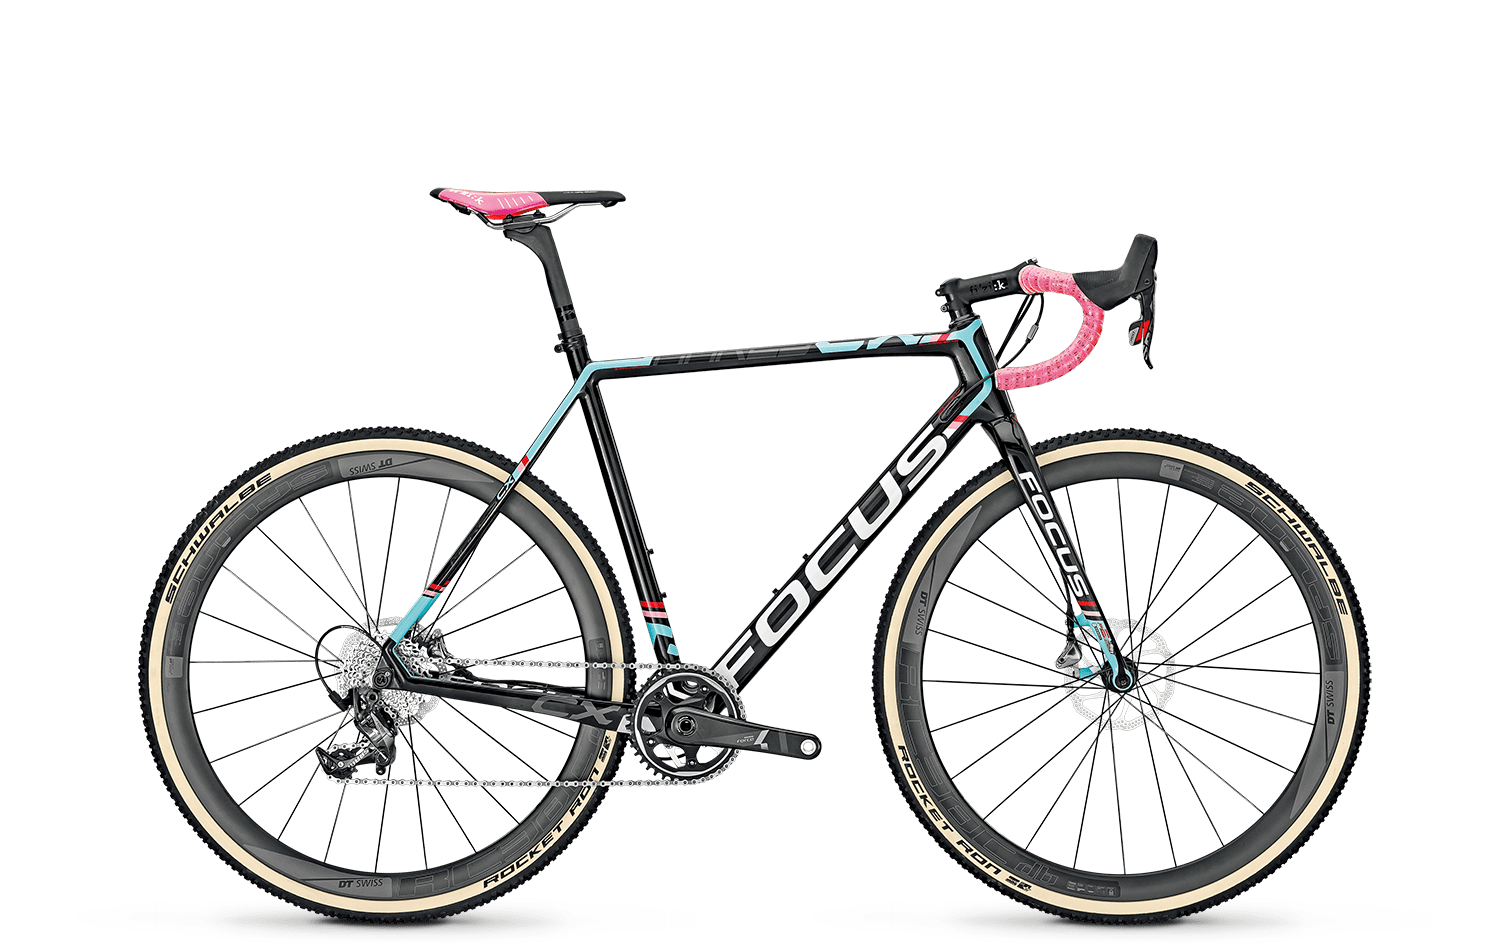 MARES CX 0.0 TEAM DISC